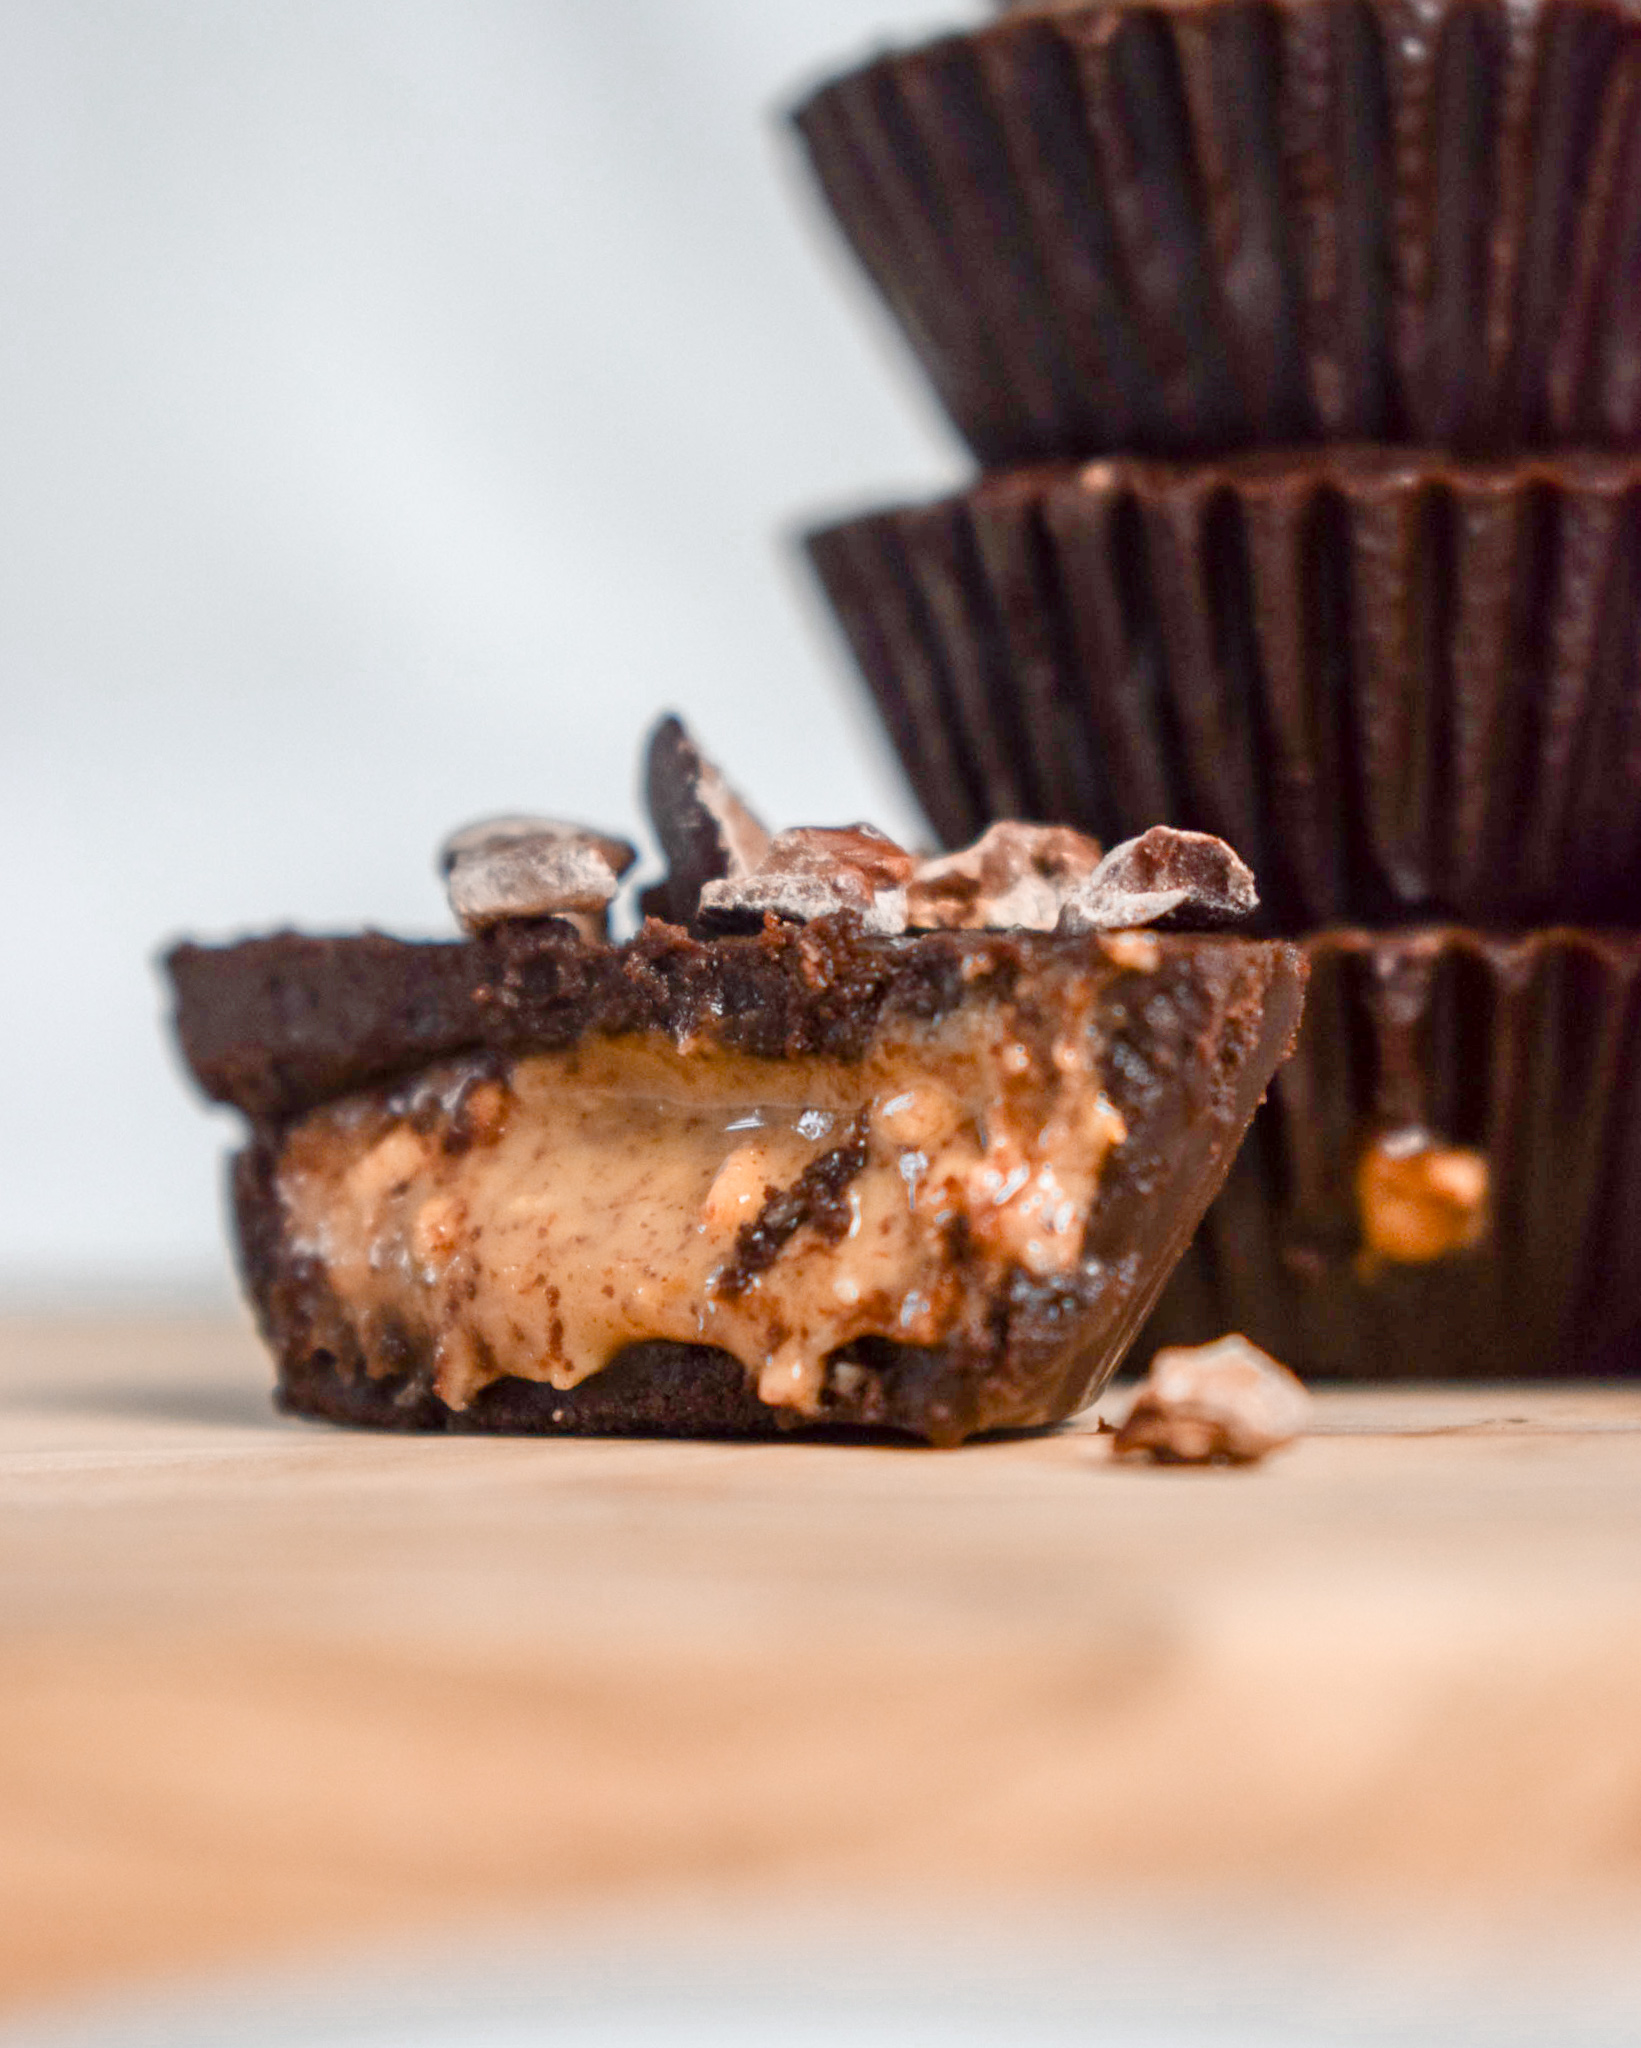 Plant-Based, Gluten-Free and Keto Peanut Butter Cups - Ally The Earthling